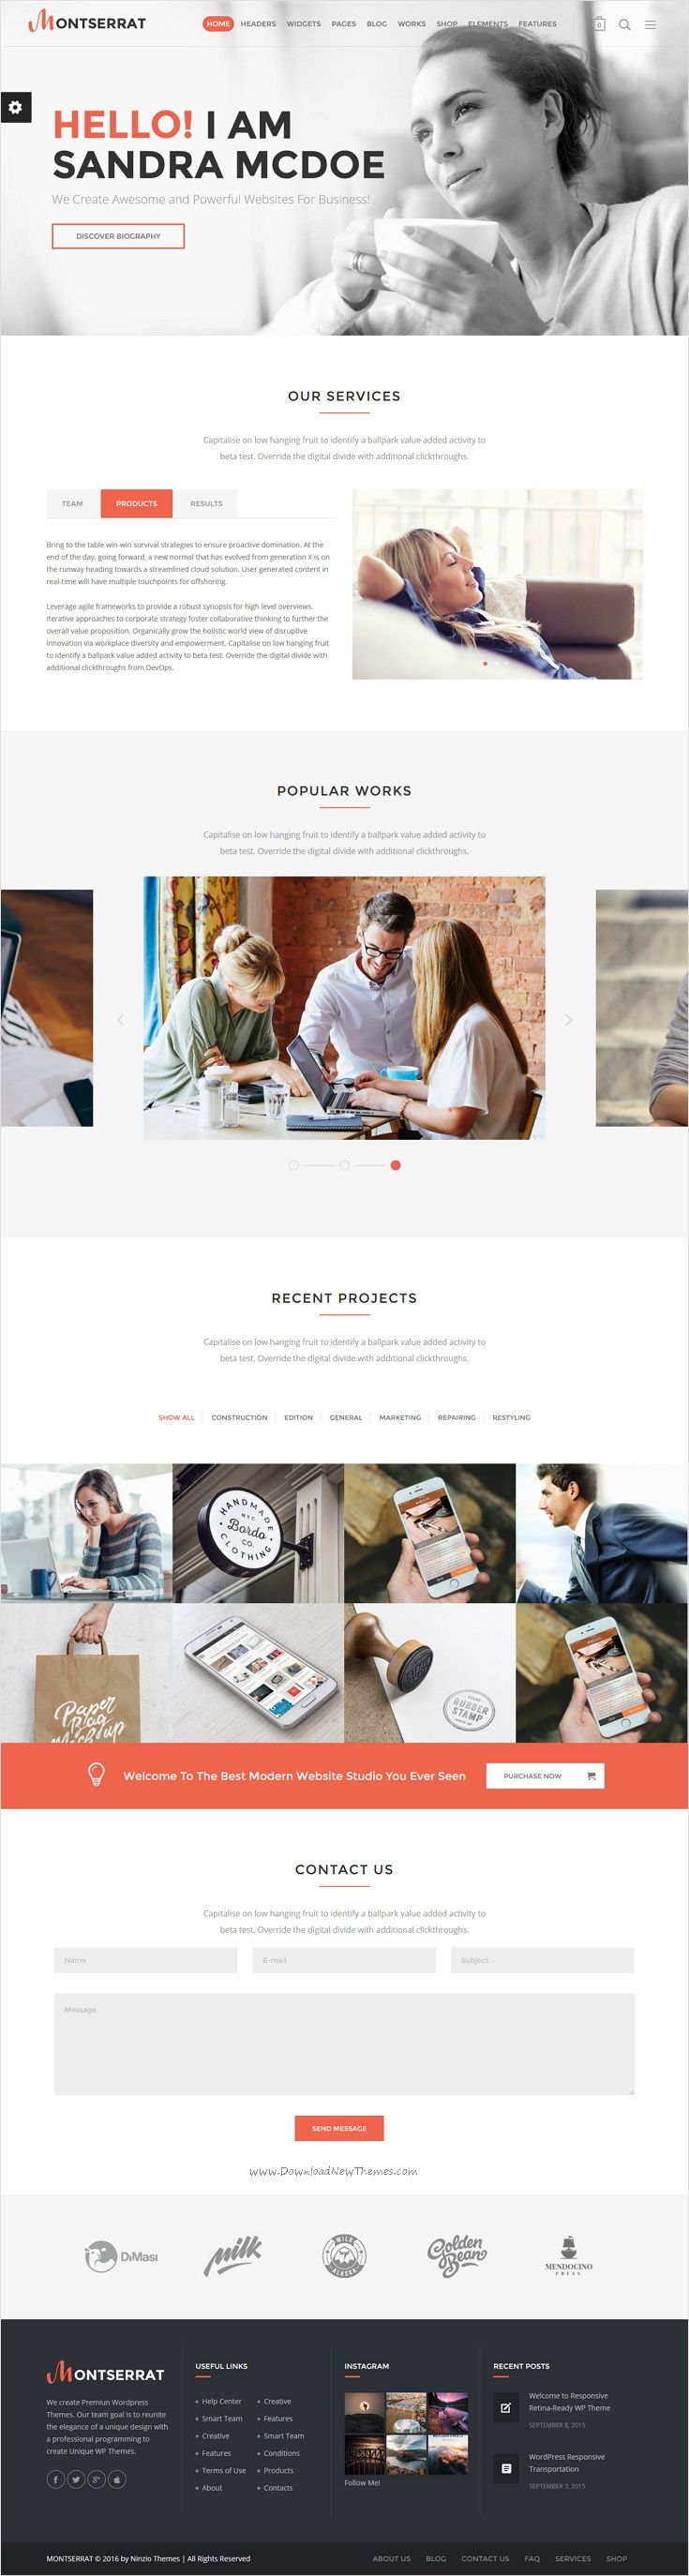 Montserrat is clean and modern 12 in 1 #WordPress theme  for multipurpose #startups #website with drag and drop page builder download now➩ https://themeforest.net/item/montserrat-multipurpose-modern-wordpress-theme/18216156?ref=Datasata